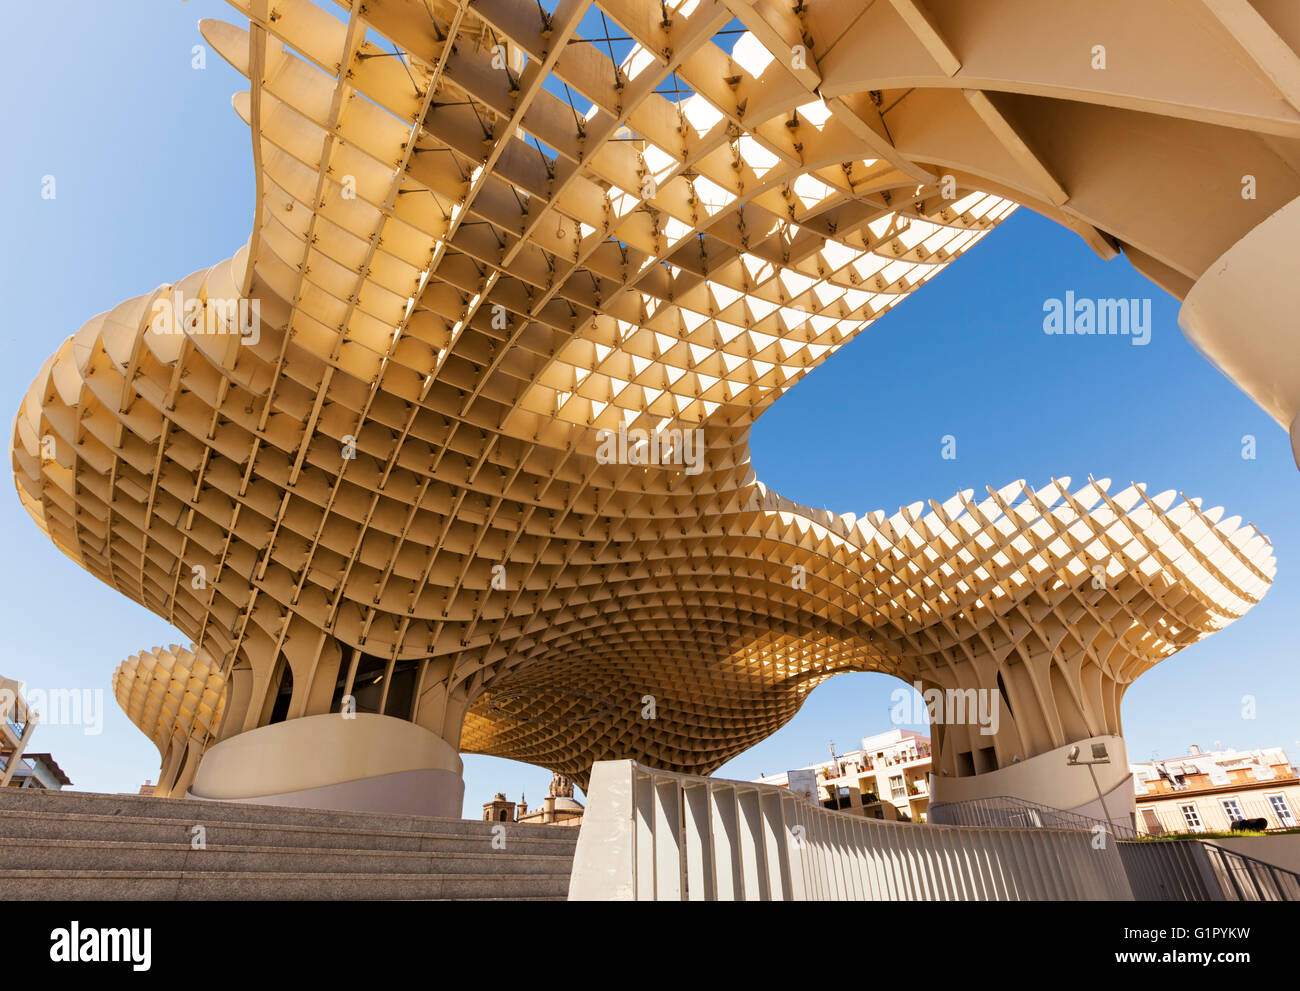 Metropol parasol the world s largest wooden structure - Espacio Metropol Parasol Building At Plaza De La Encarnacion Seville Spain A Wooden